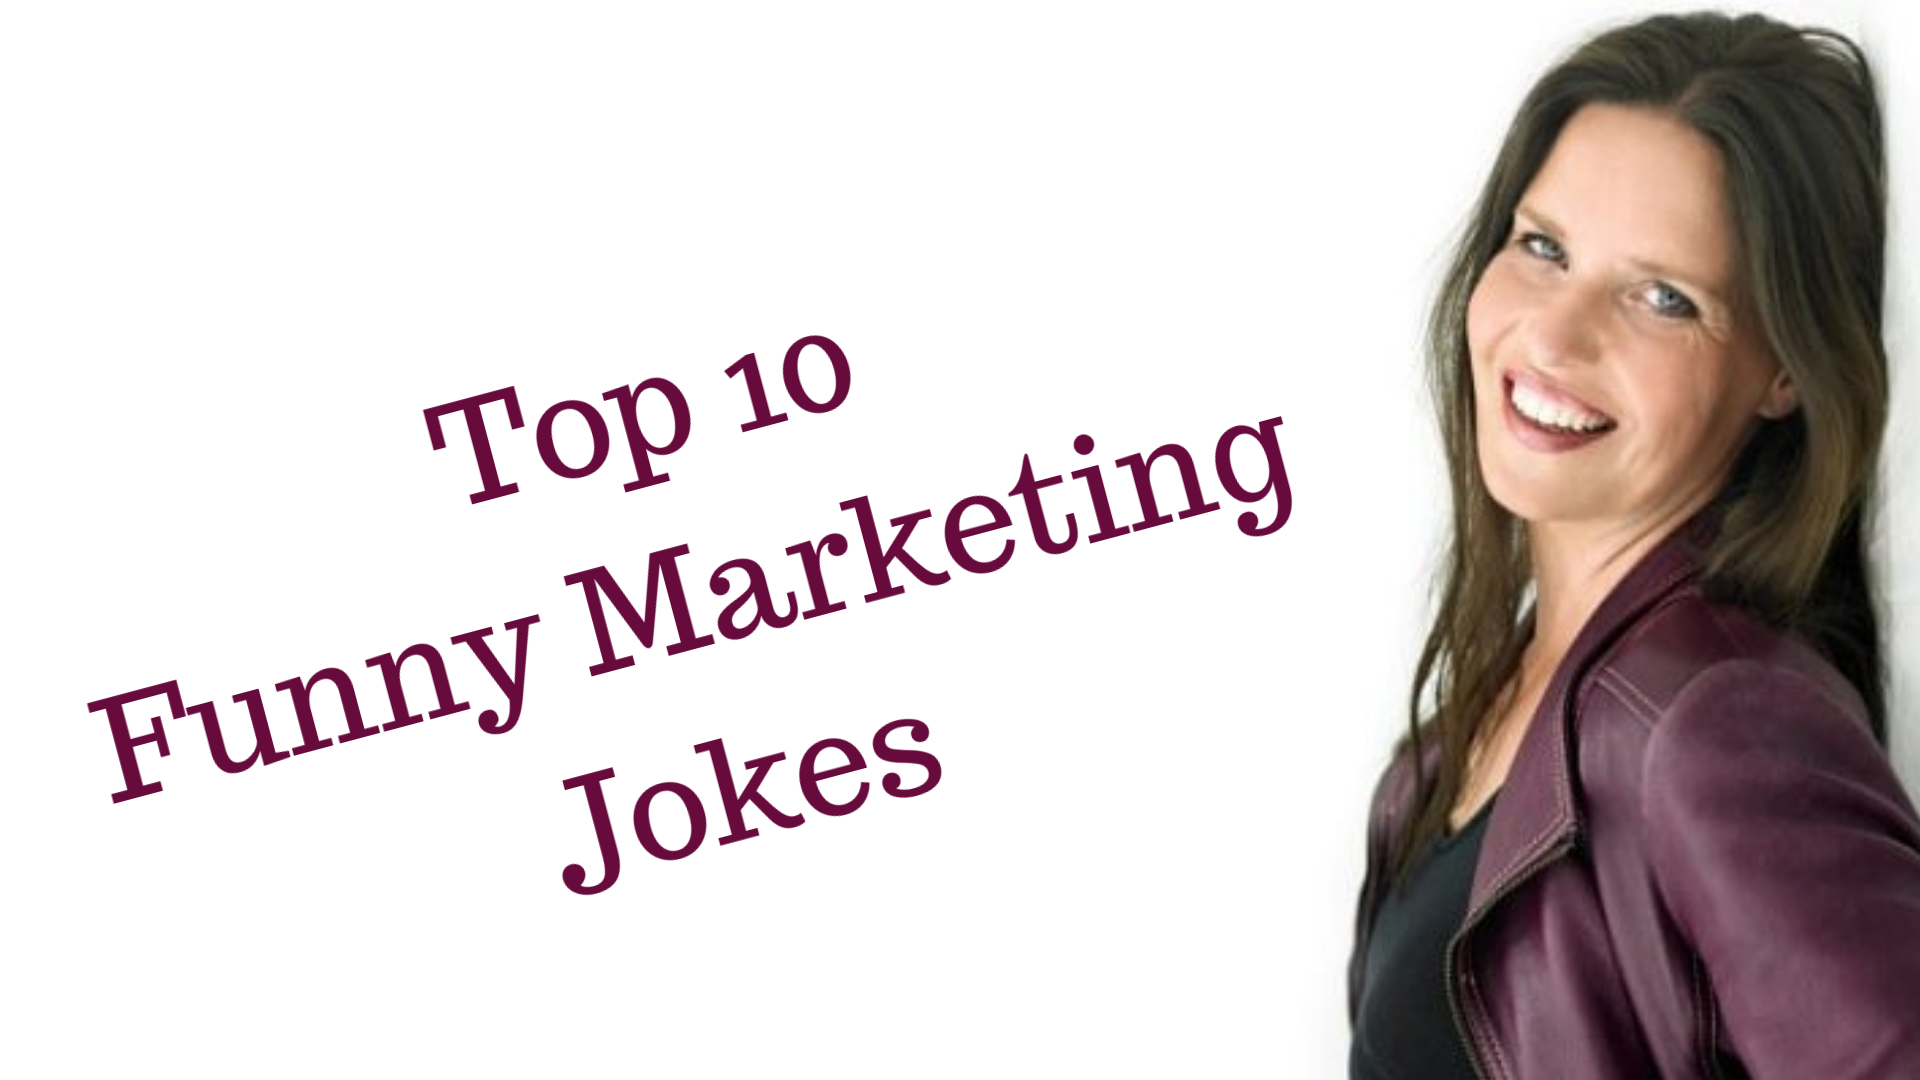 Top 10 funny marketing jokes that will crack you up